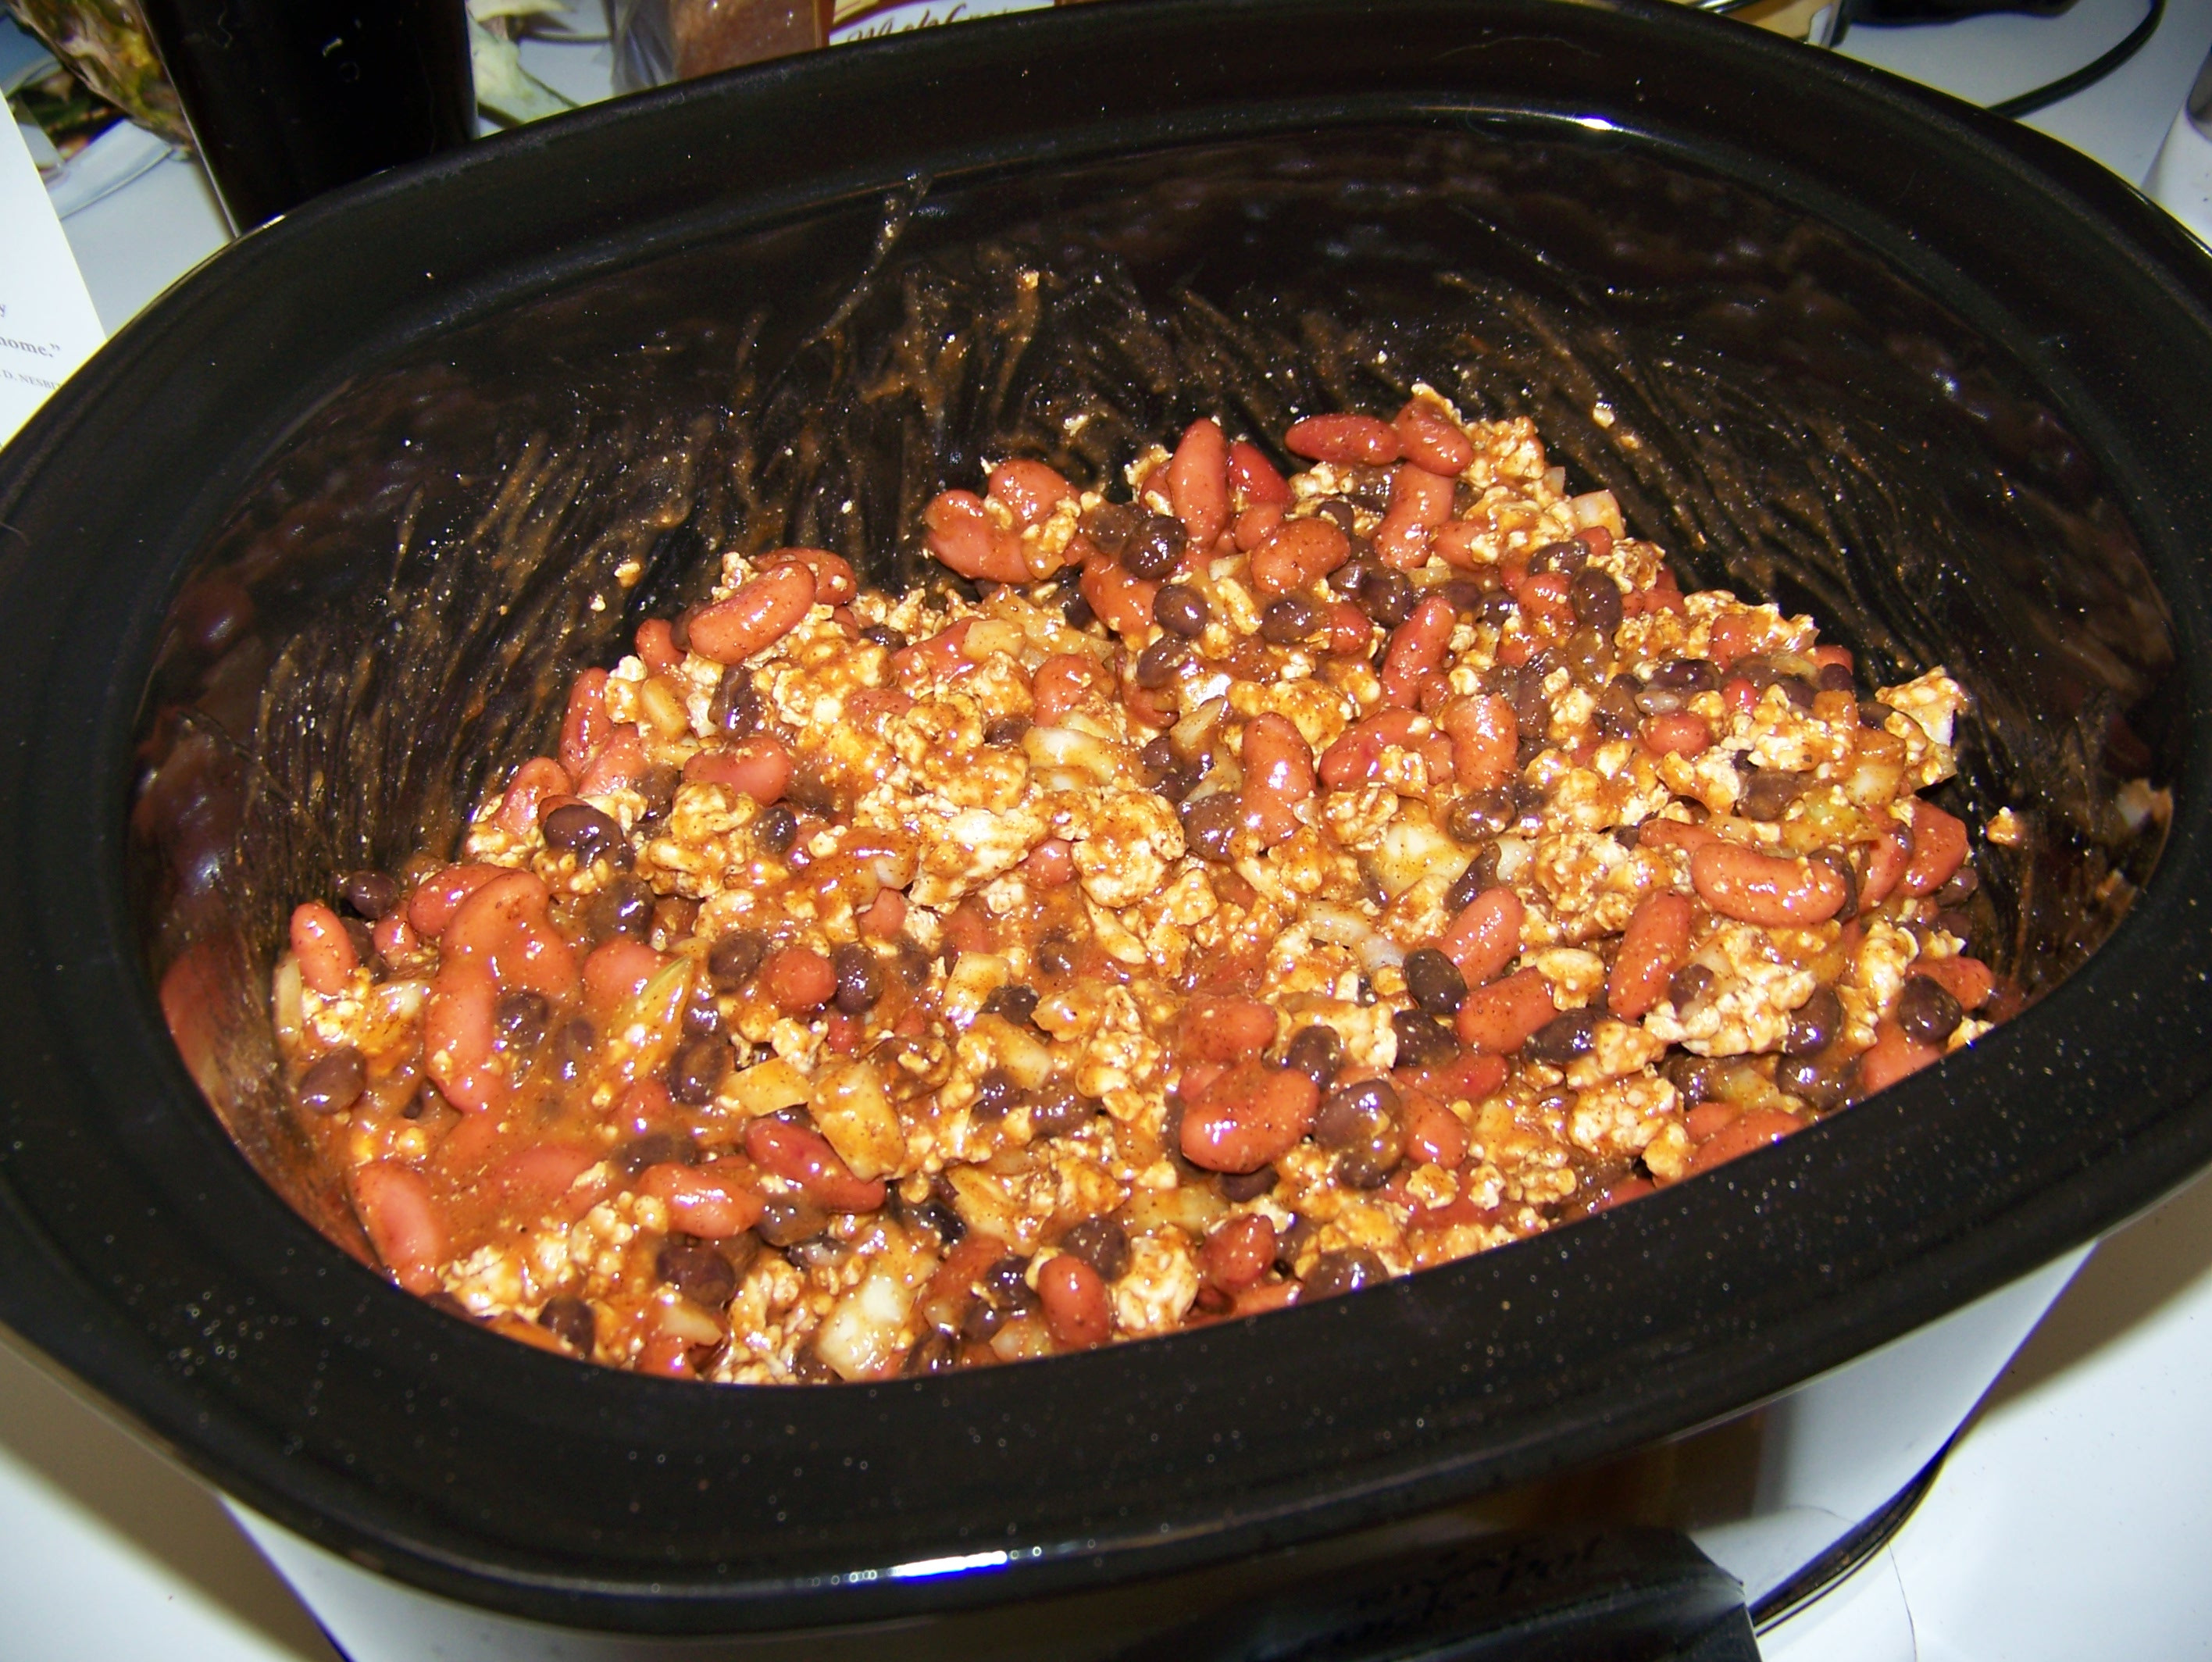 Healthy Crock Pot Recipes With Ground Beef  Crock Pot Recipes Chicken Beef with Ground Beef Easy